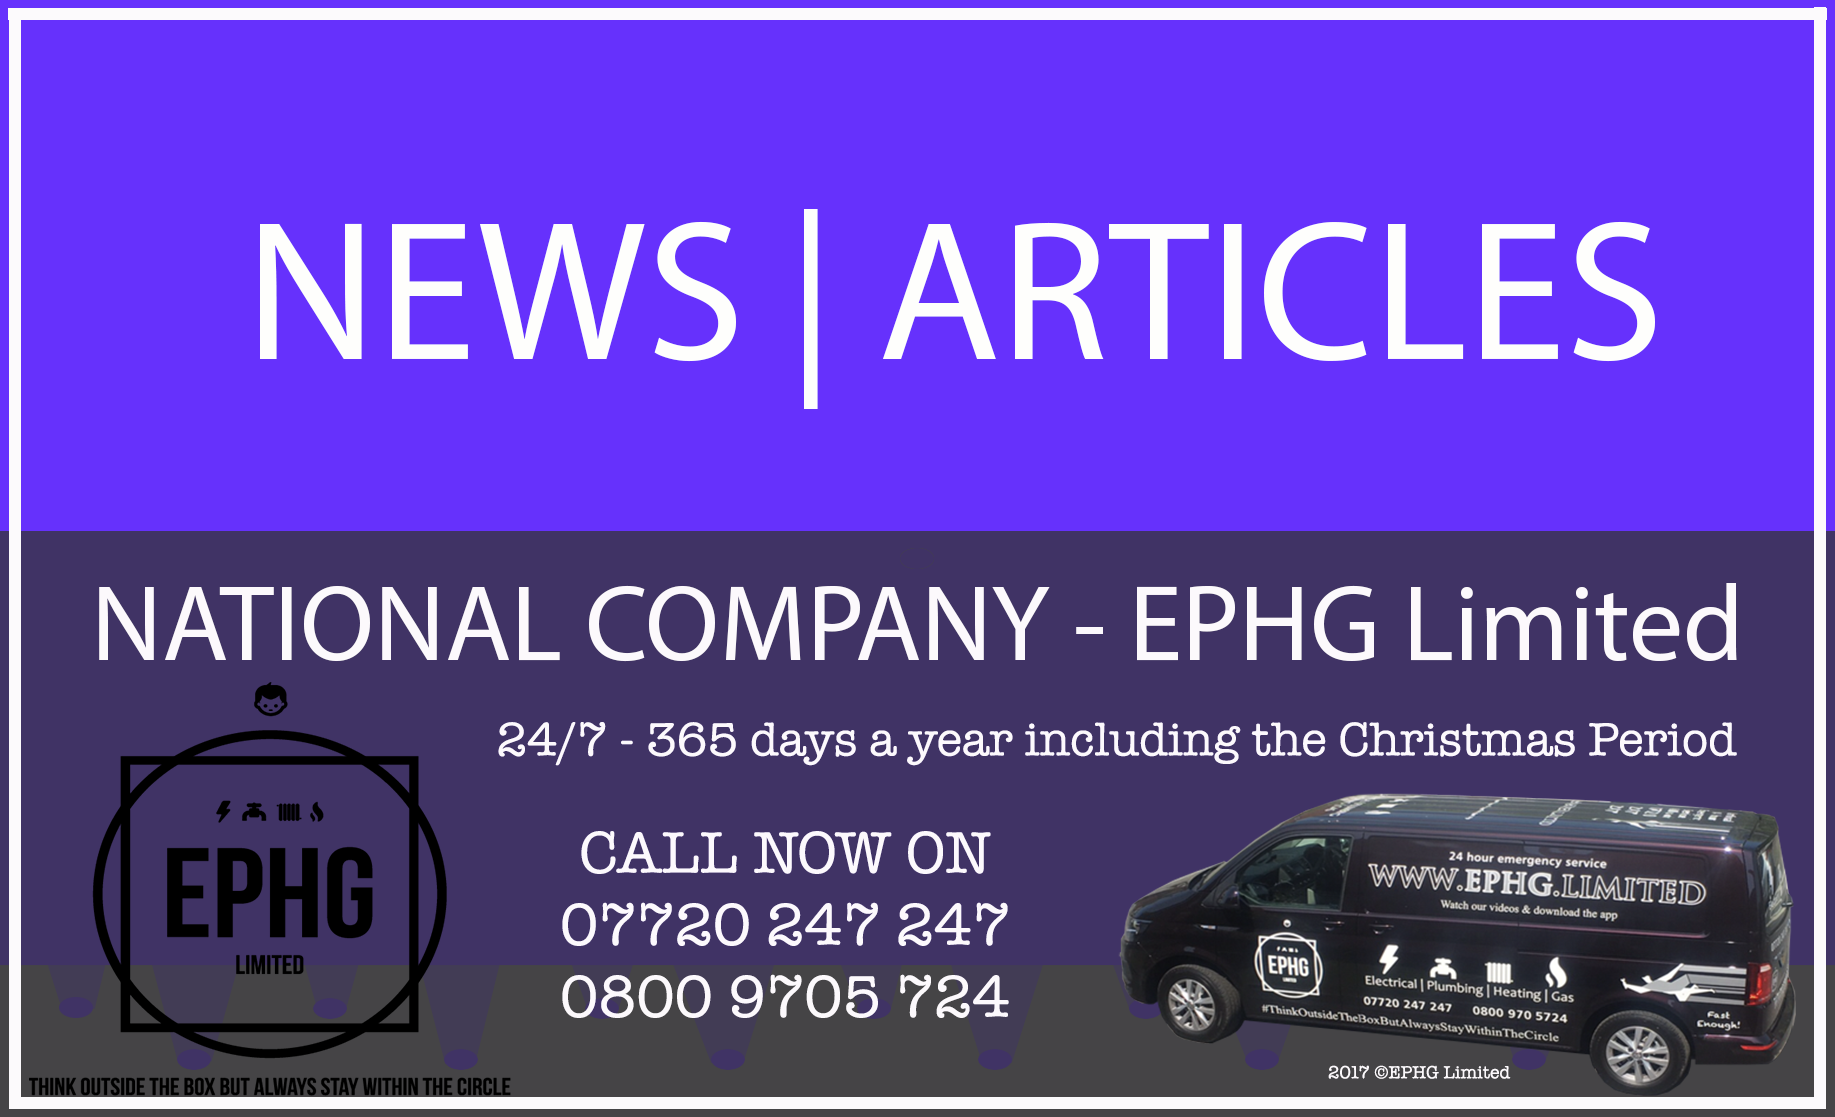 EPHG News And Articles